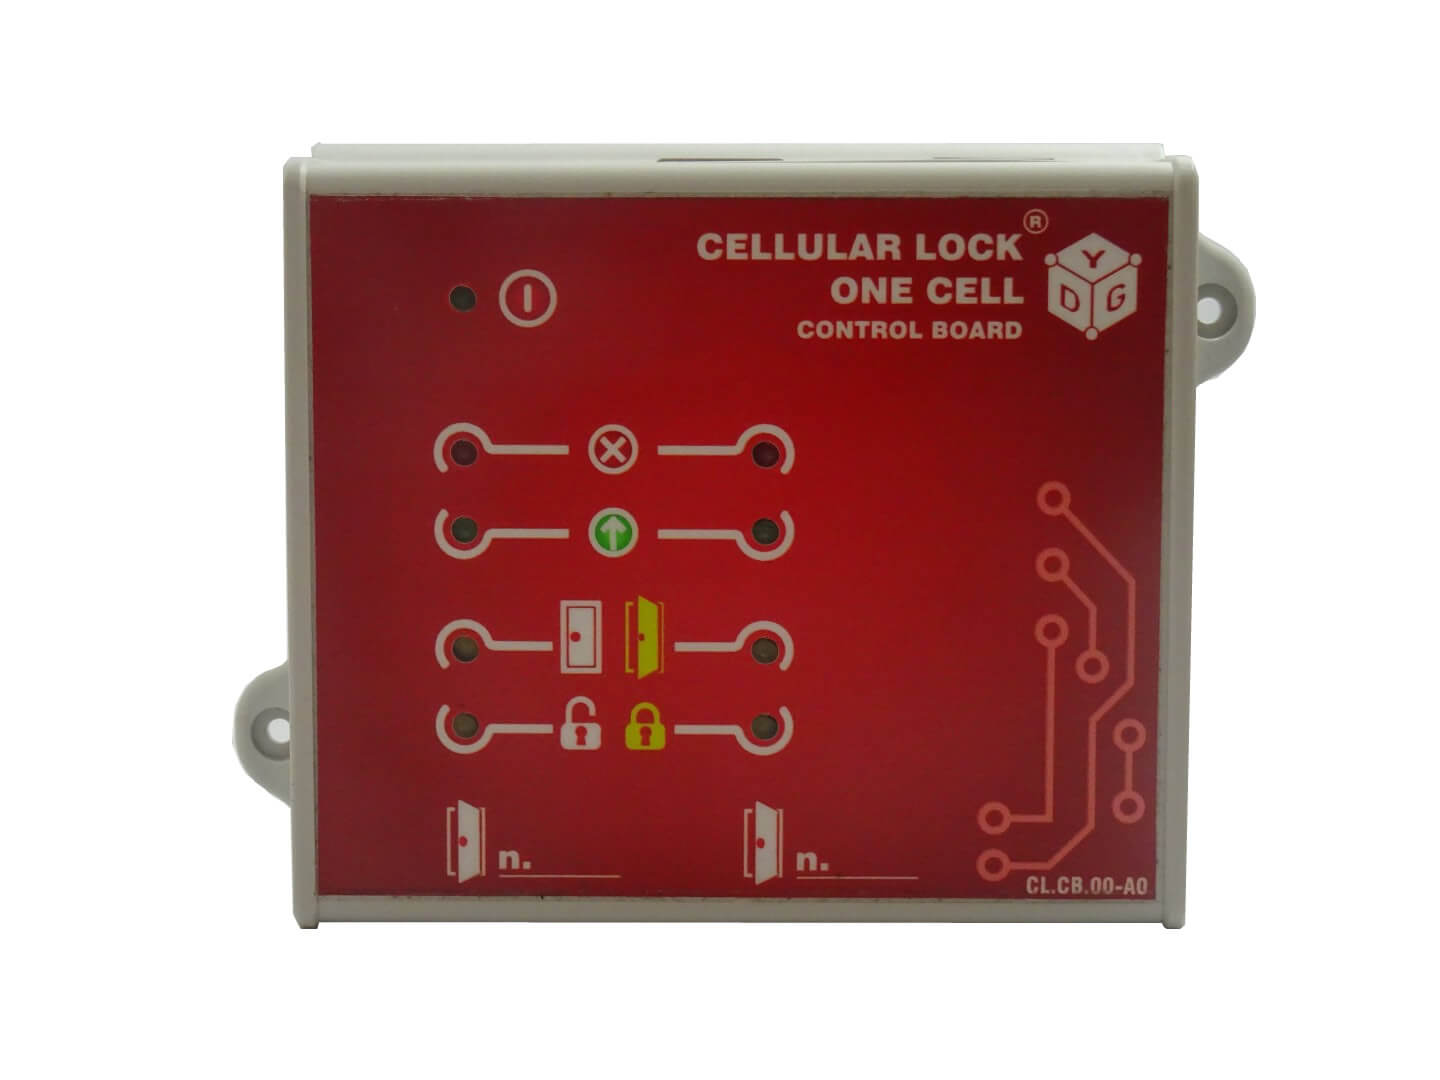 CL.CB.00 CELLULAR LOCK® – ONE CELL.